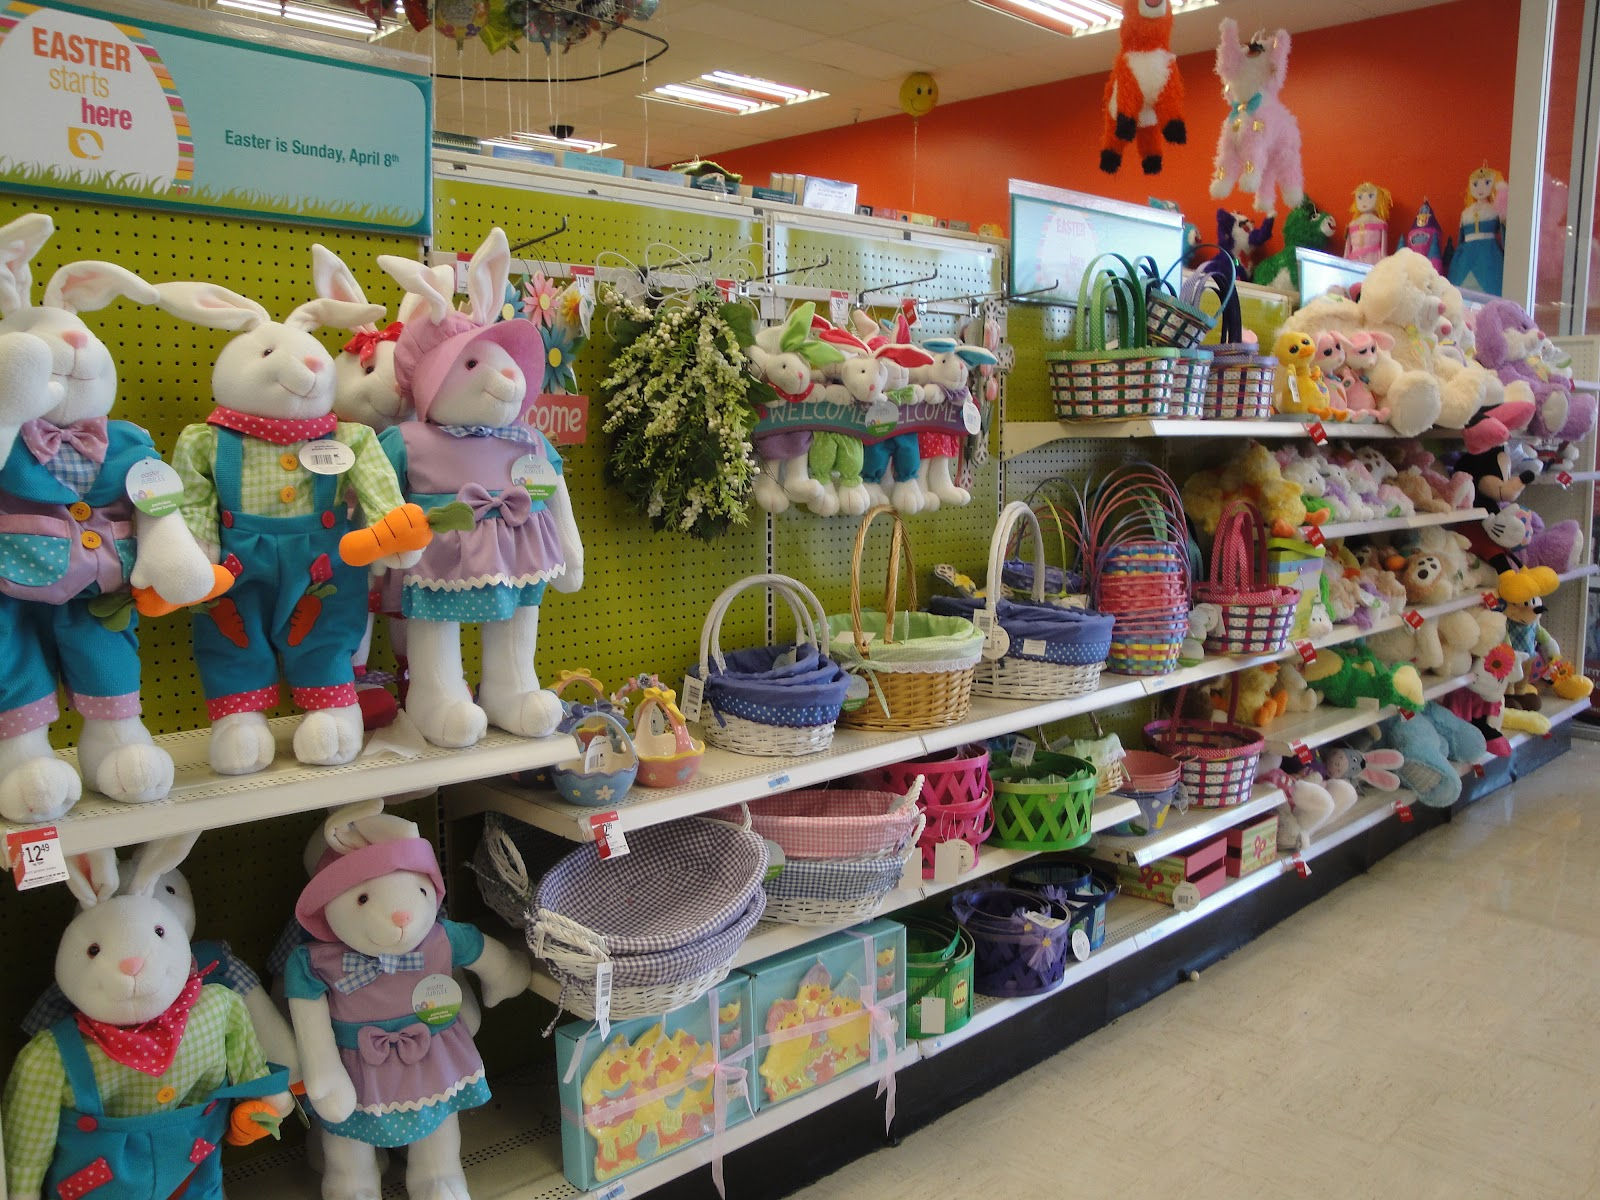 Easter Basket Shopping on a Bud at Kmart